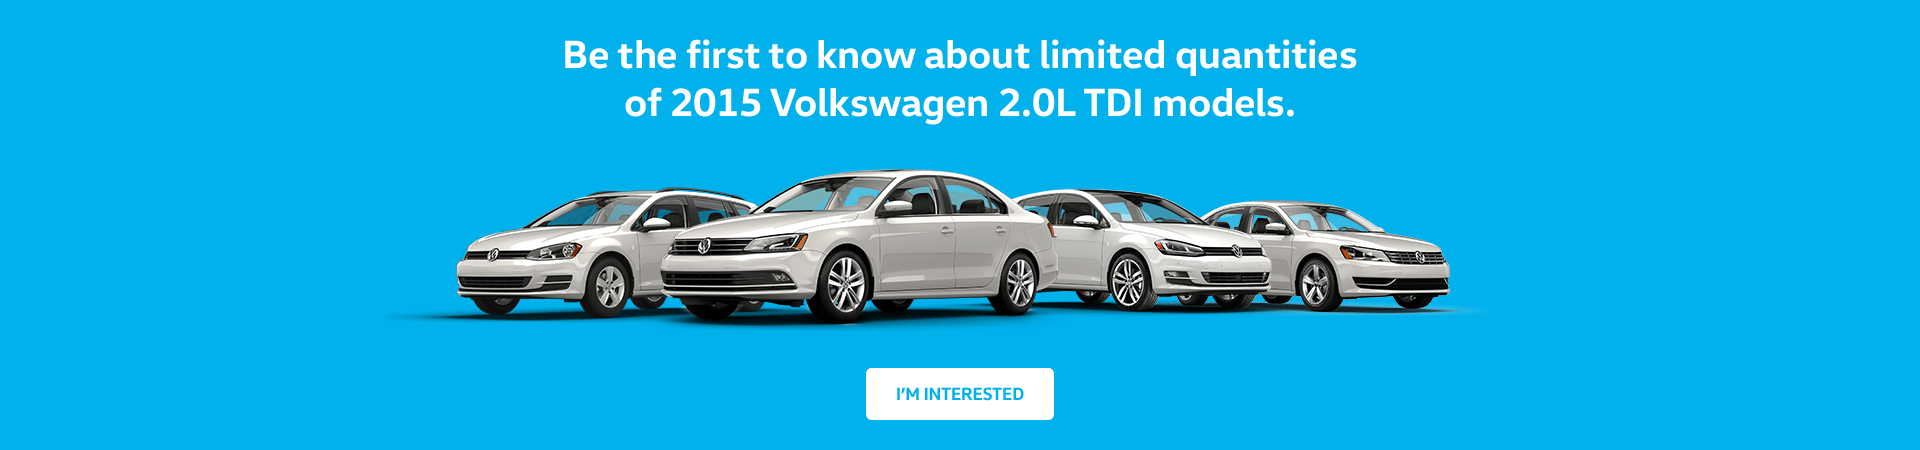 2015 VW TDI models